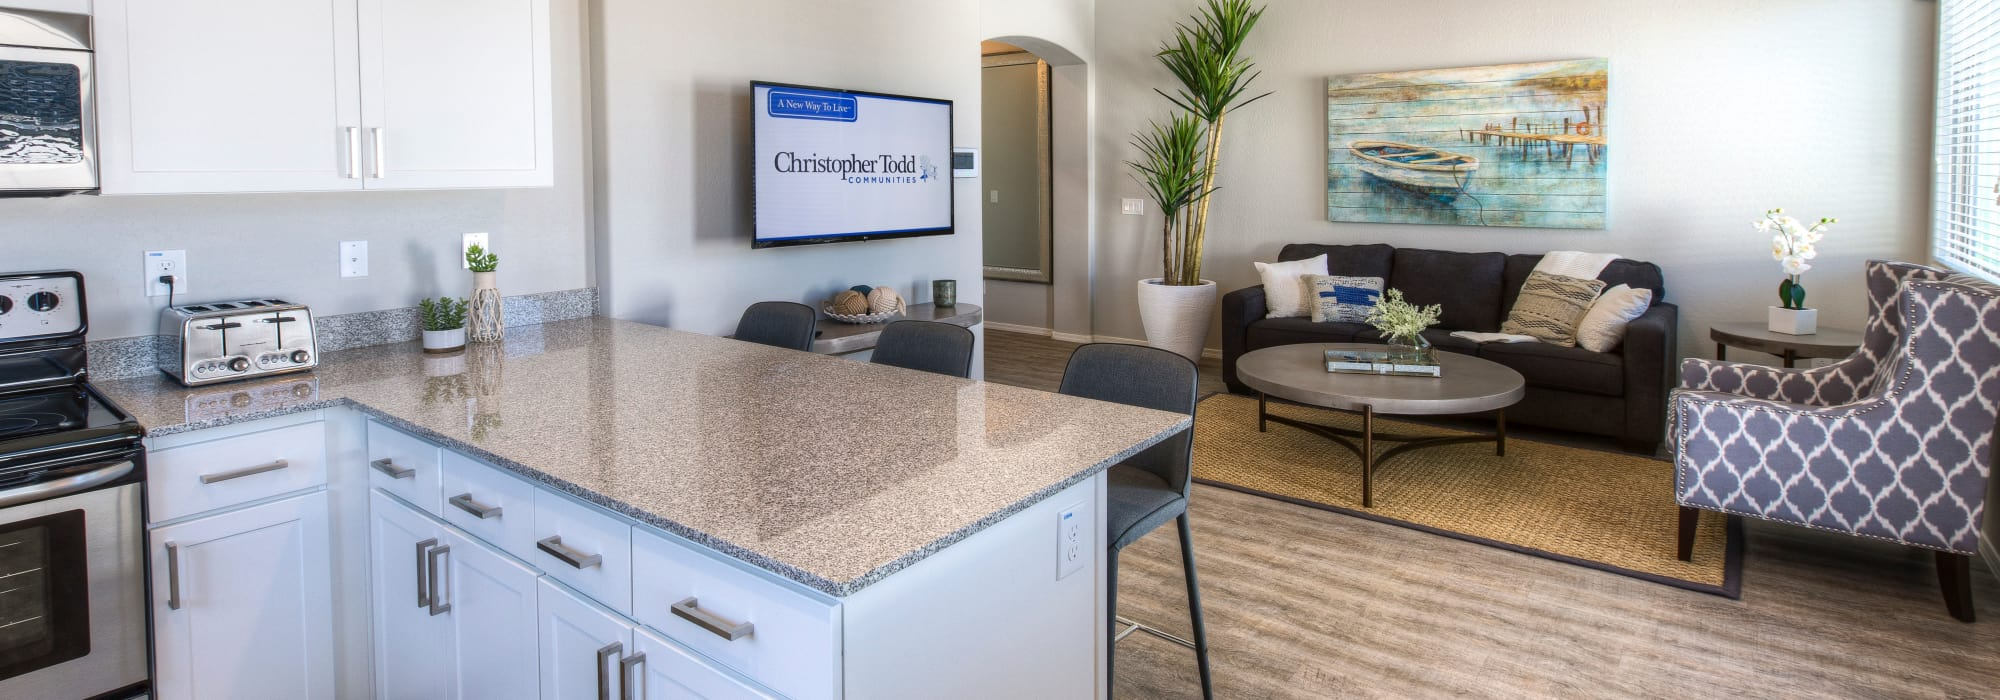 Kitchen leading into the living room at Christopher Todd Communities on Greenway in Surprise, Arizona